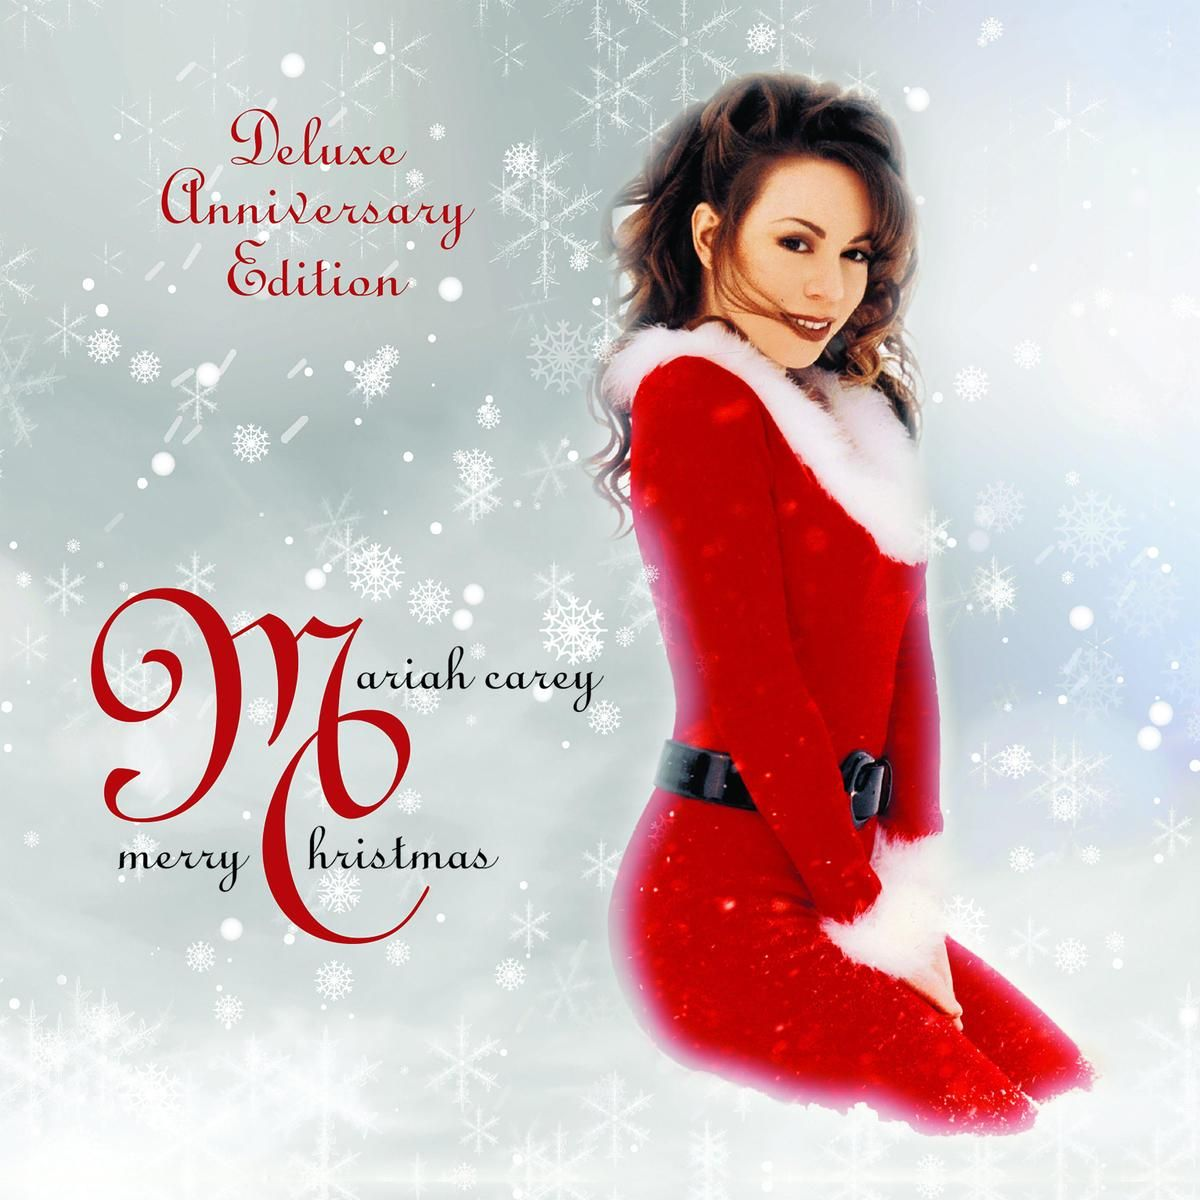 Merry Christmas (Deluxe Anniversary Edition) 2CD – Mariah Carey